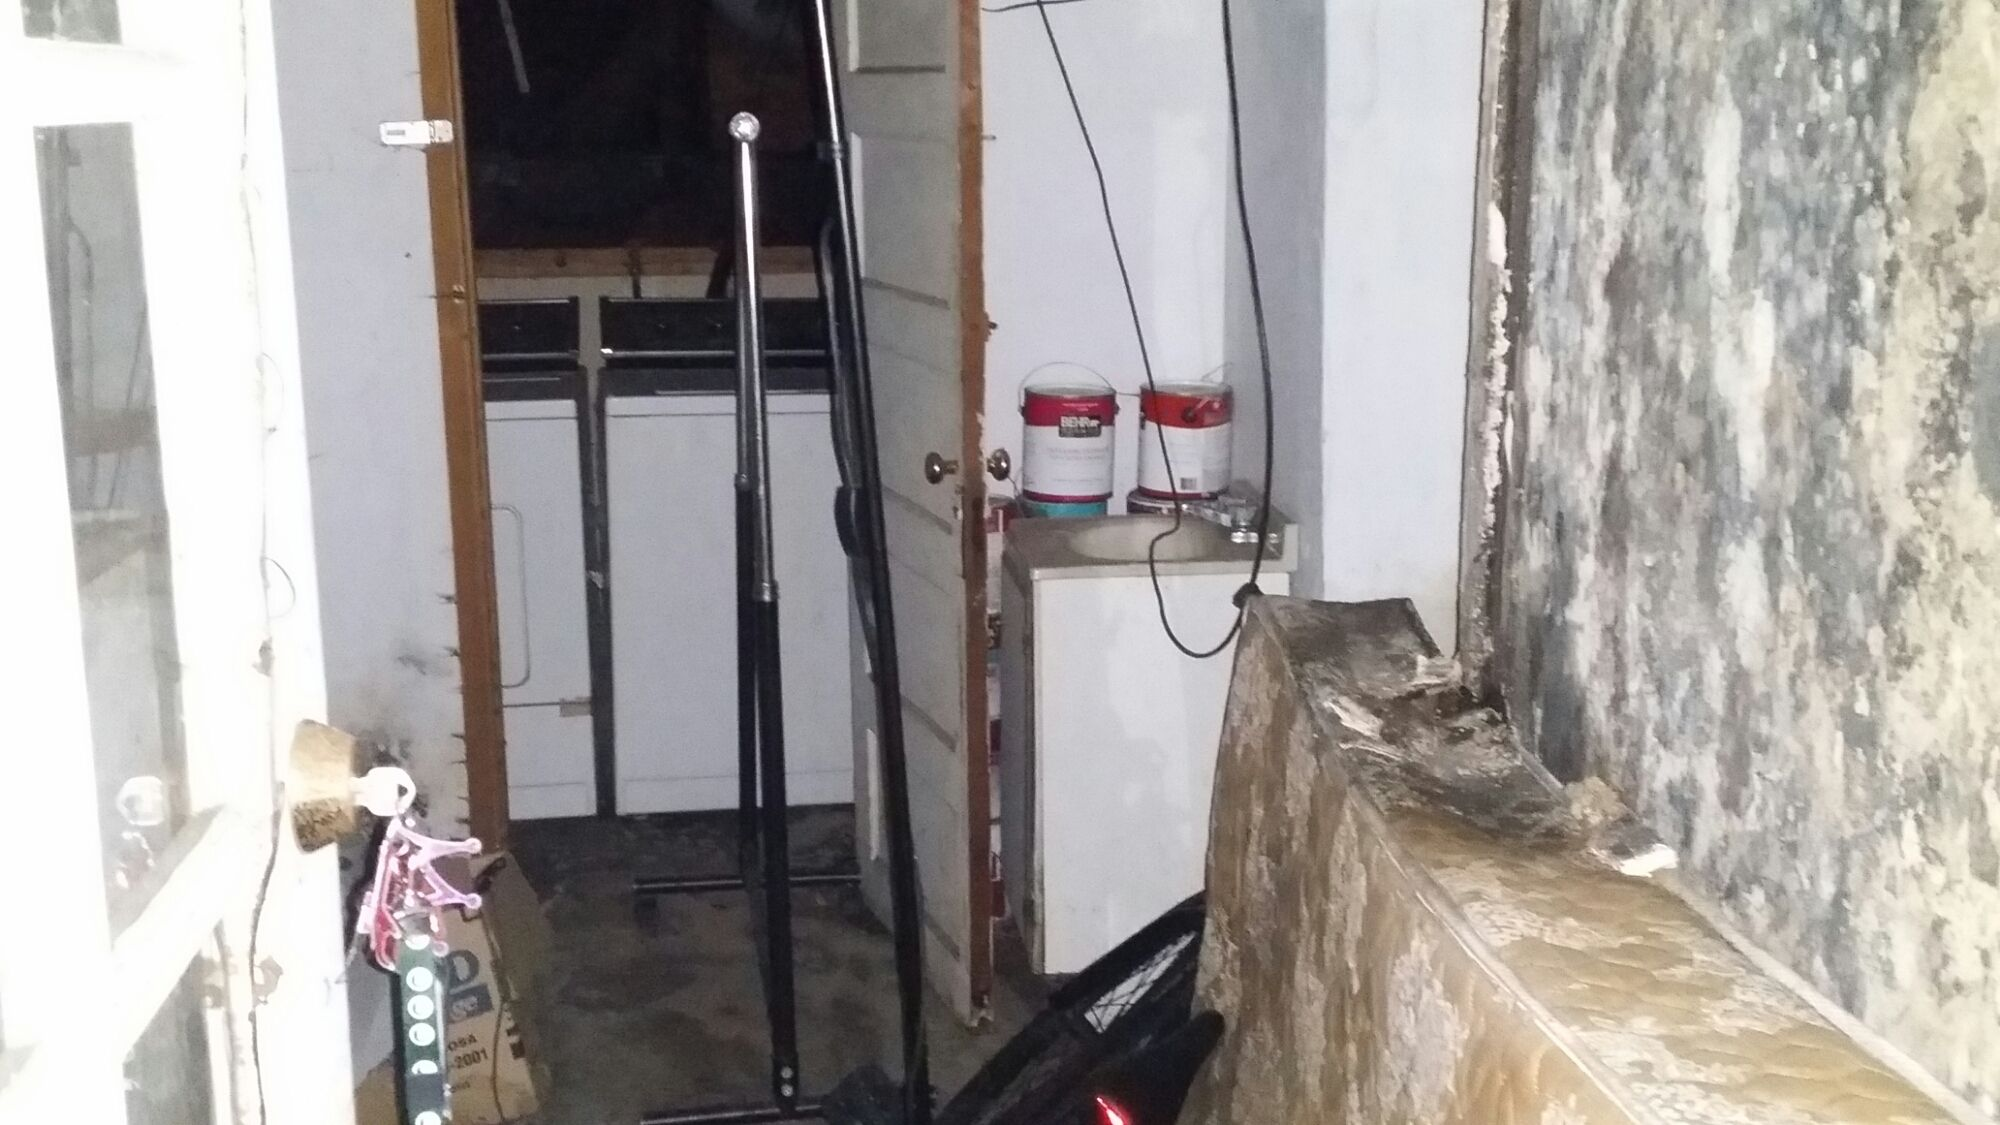 Mold Inspection Professional Mold Inspection Is Important